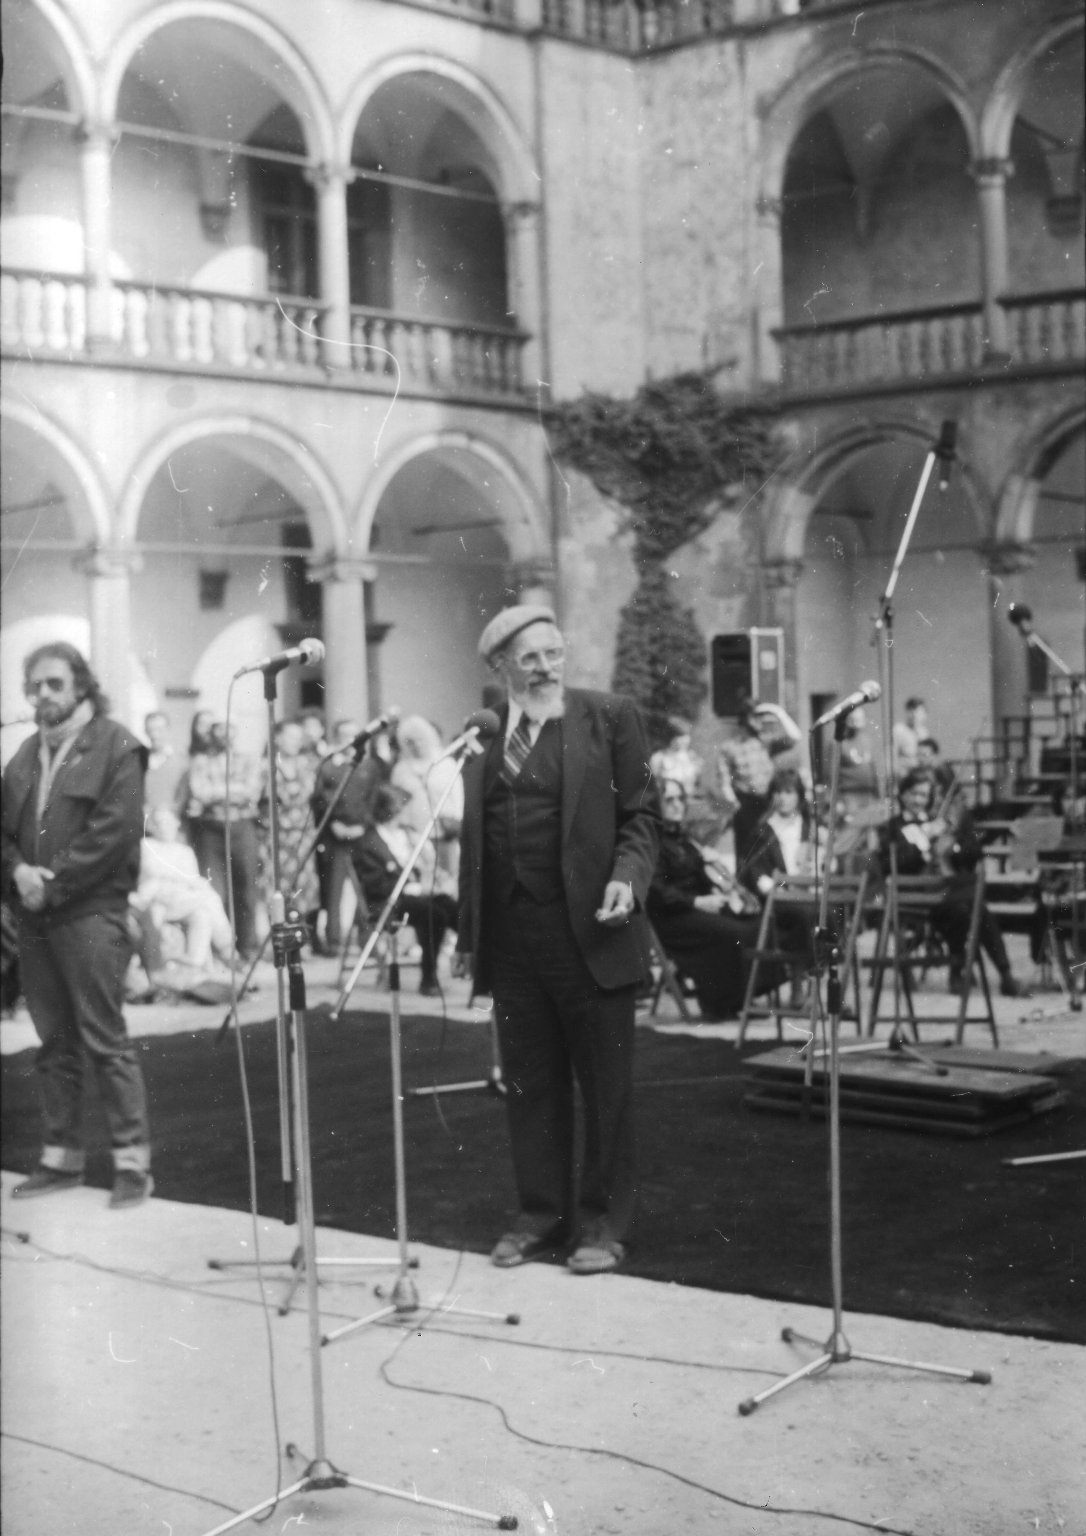 Rabbi Zalman Schachter-Shalomi speaking at the Festival of the Spirit in Krakow, Poland, with an unidentified man, possibly his translator, on the left, ca. 1985.